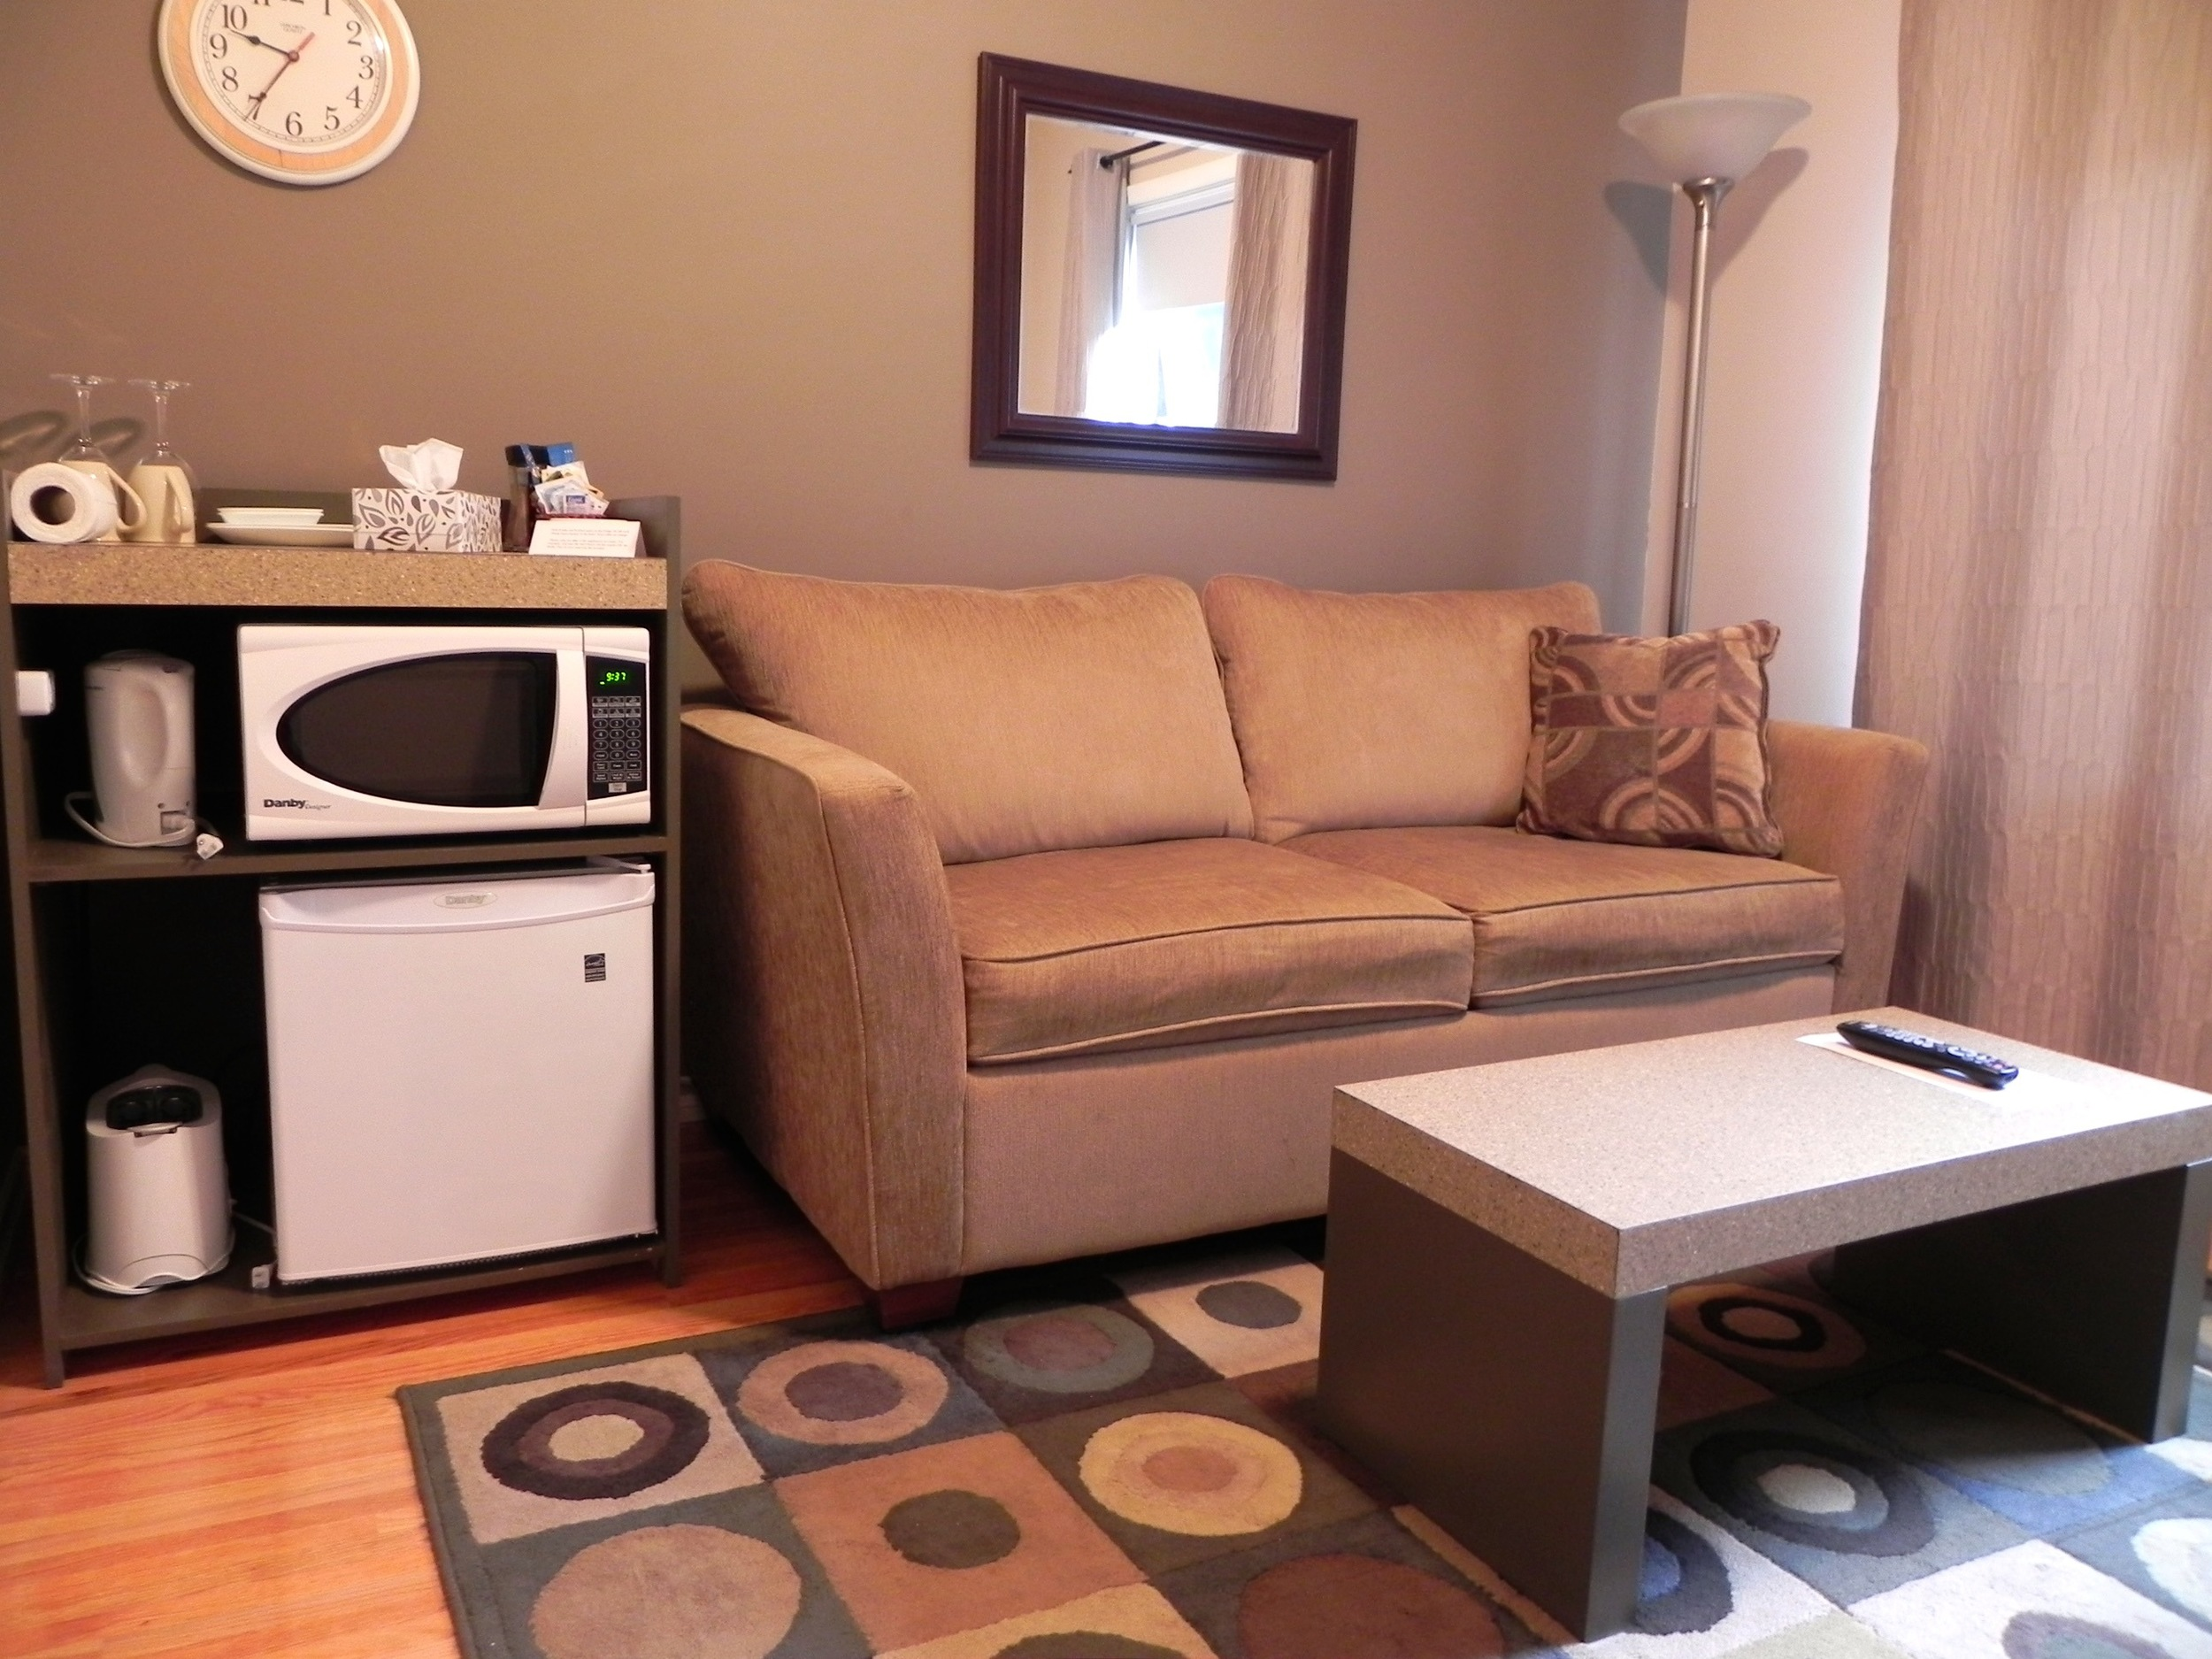 Upper Lounge Couch and Fridge